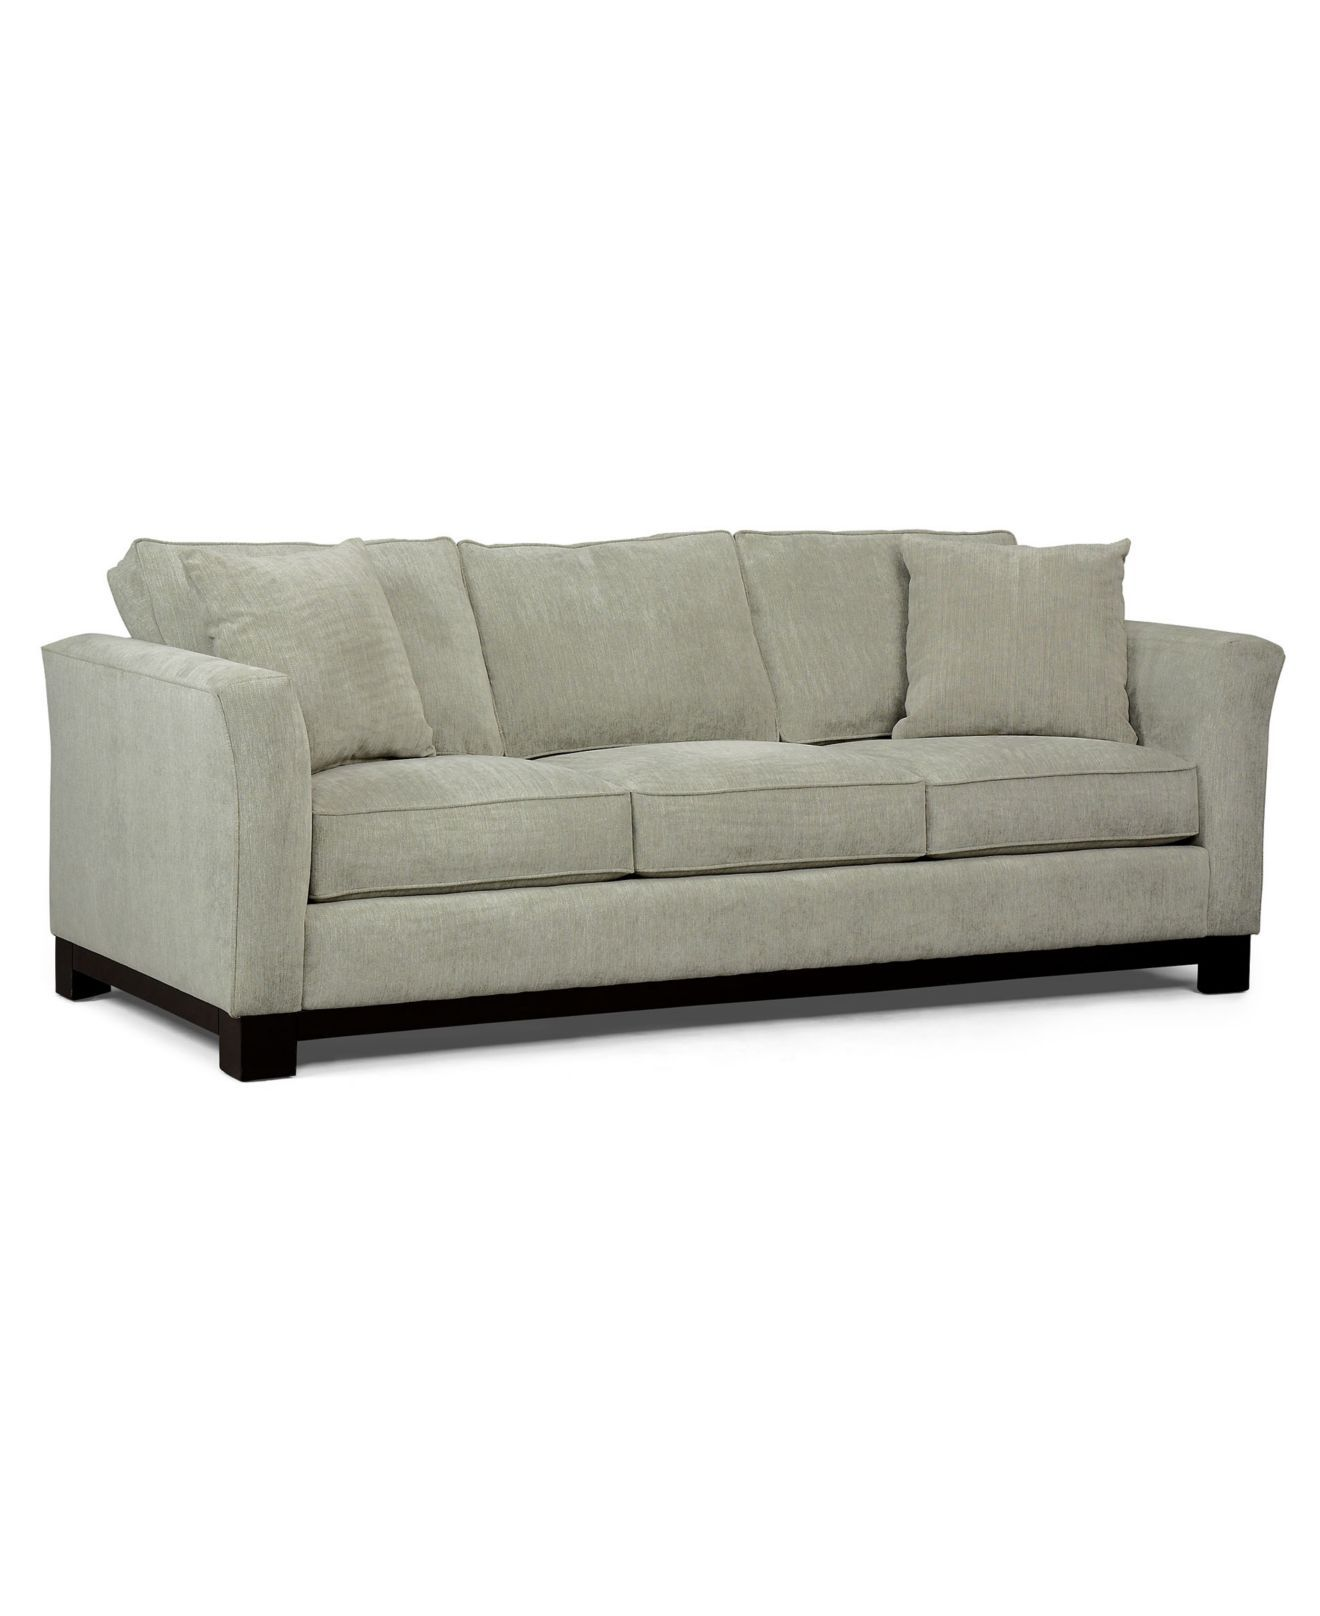 kenton fabric sofa parchment mart leather sectional queen sleeper 88 quotw x 38 quotd 33 quoth